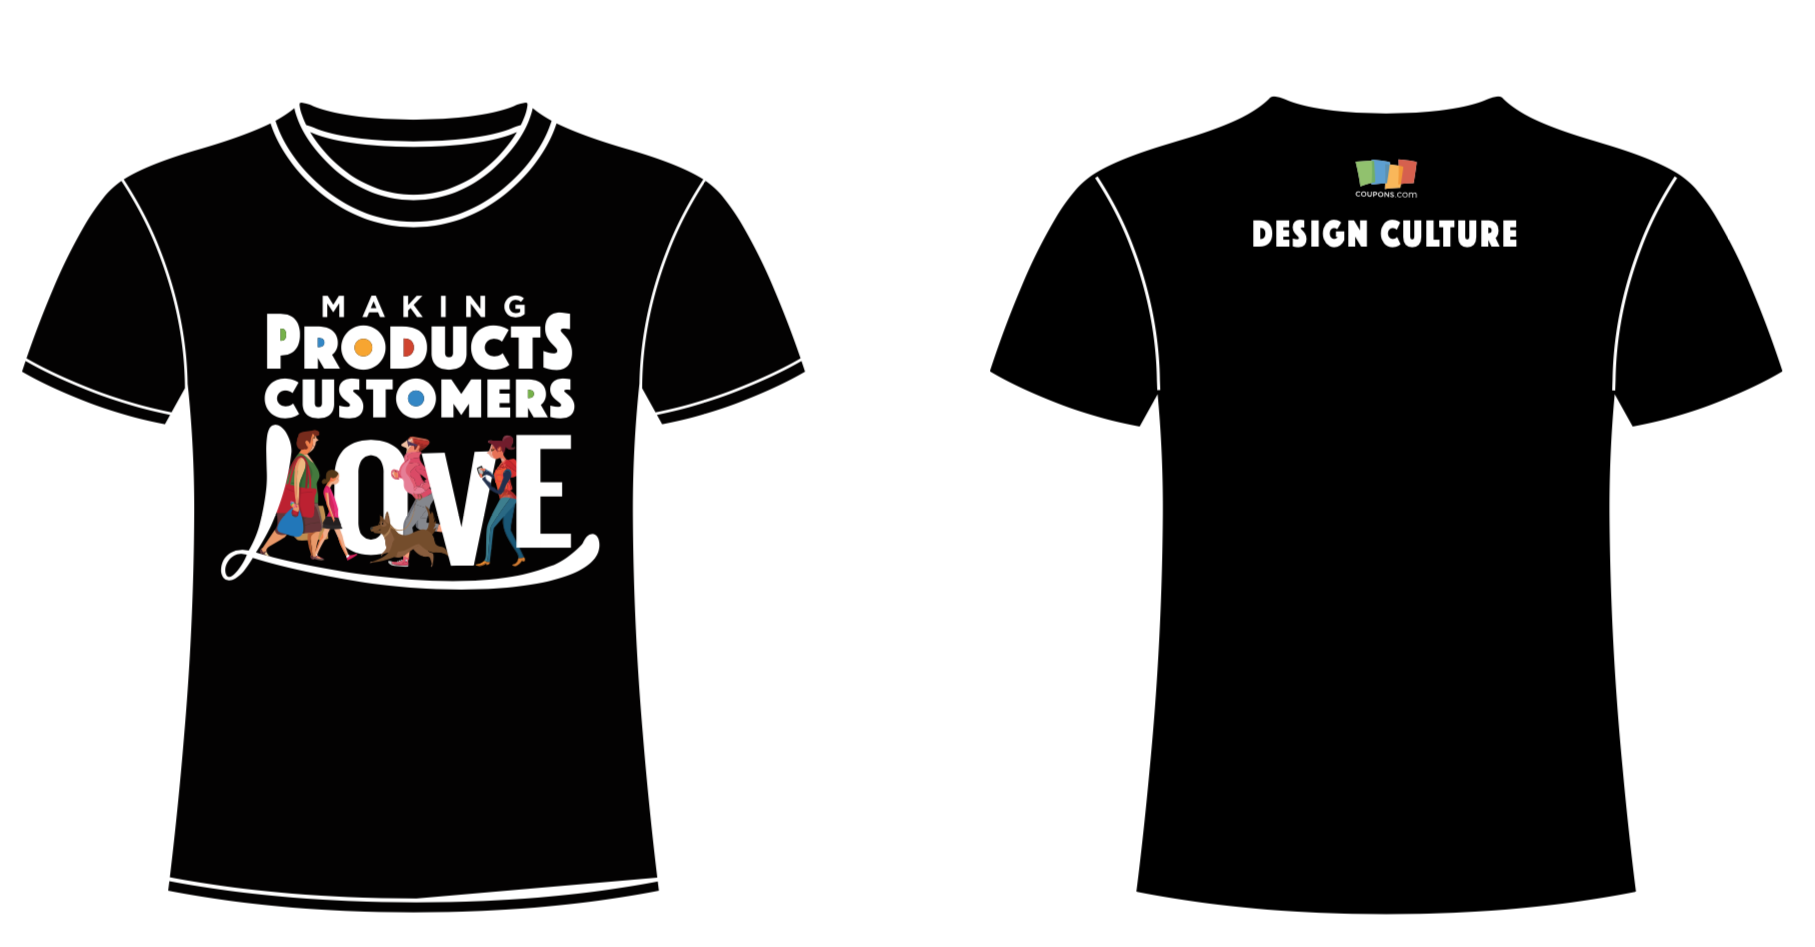 """Drawing of the front and back of the promotional t-shirts: front has """"Making Products Customers Love"""" and the back has """"Design Culture."""""""